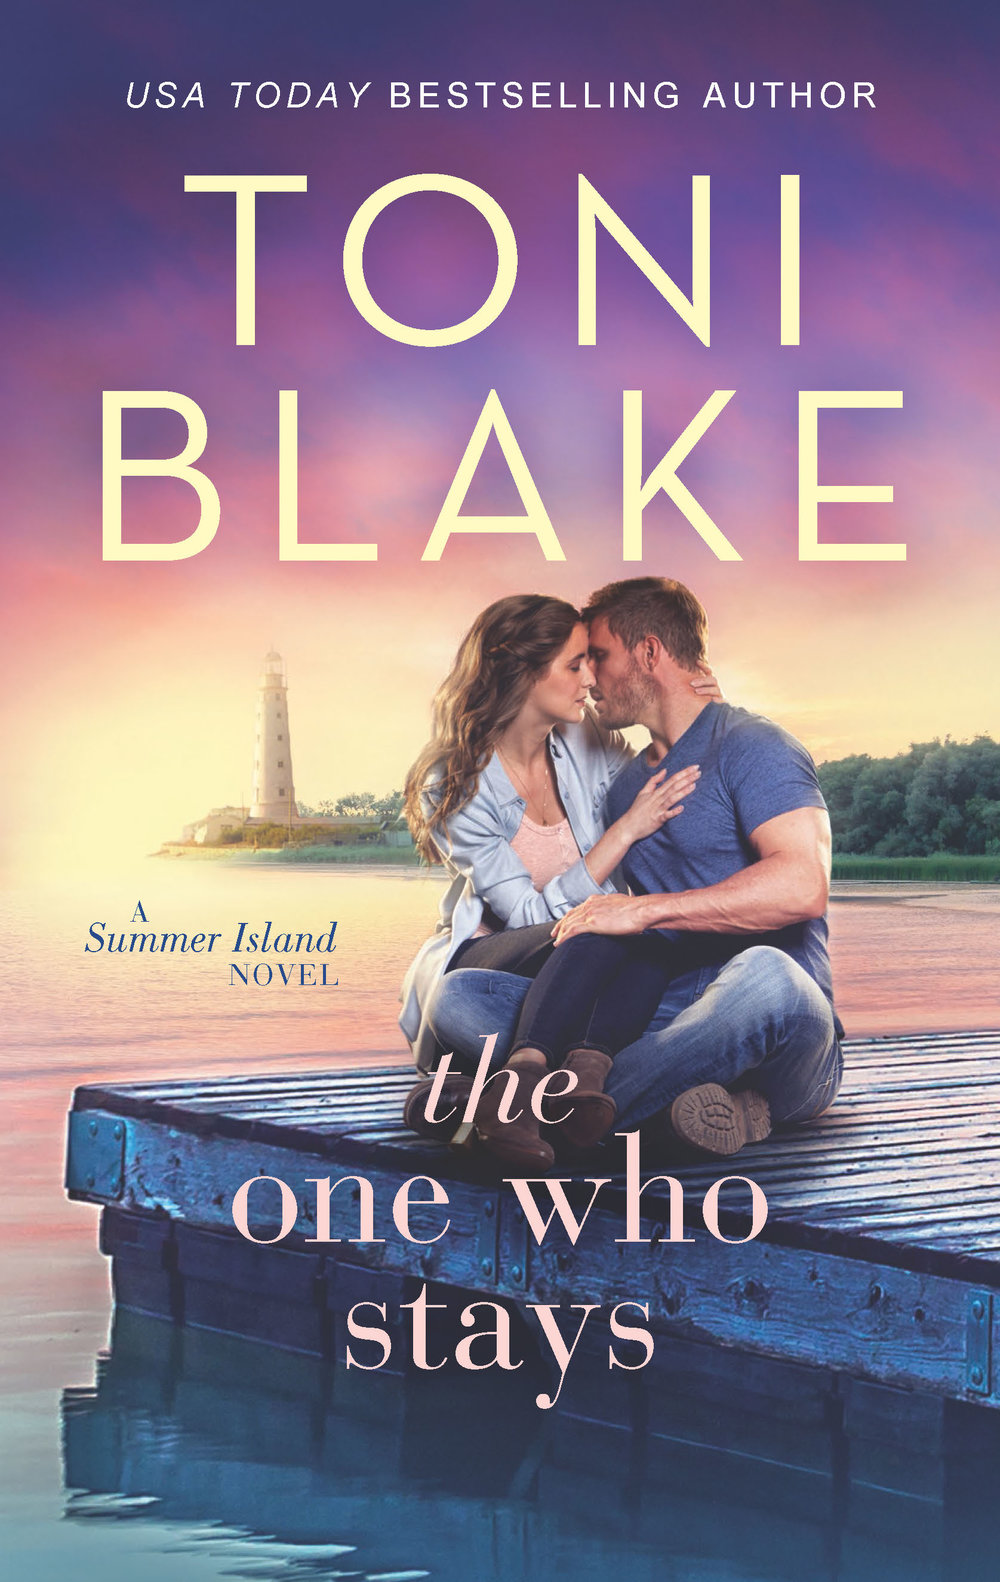 The One Who Stays   Summer Island, Book 1 July 30, 2019   more about the book